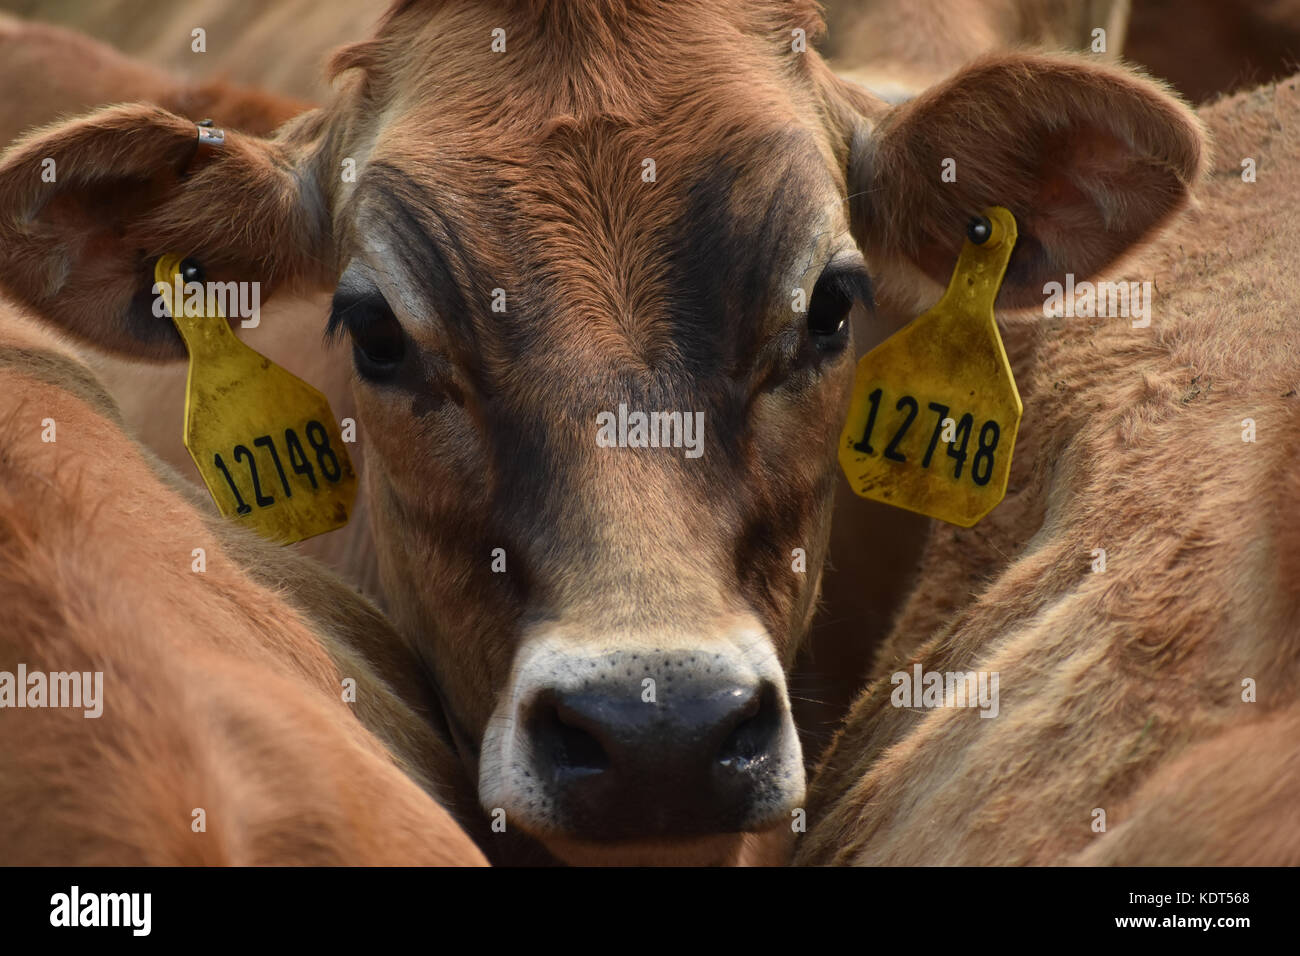 Cow wearing tags in ears and closeup of head while standing between other cows - Stock Image